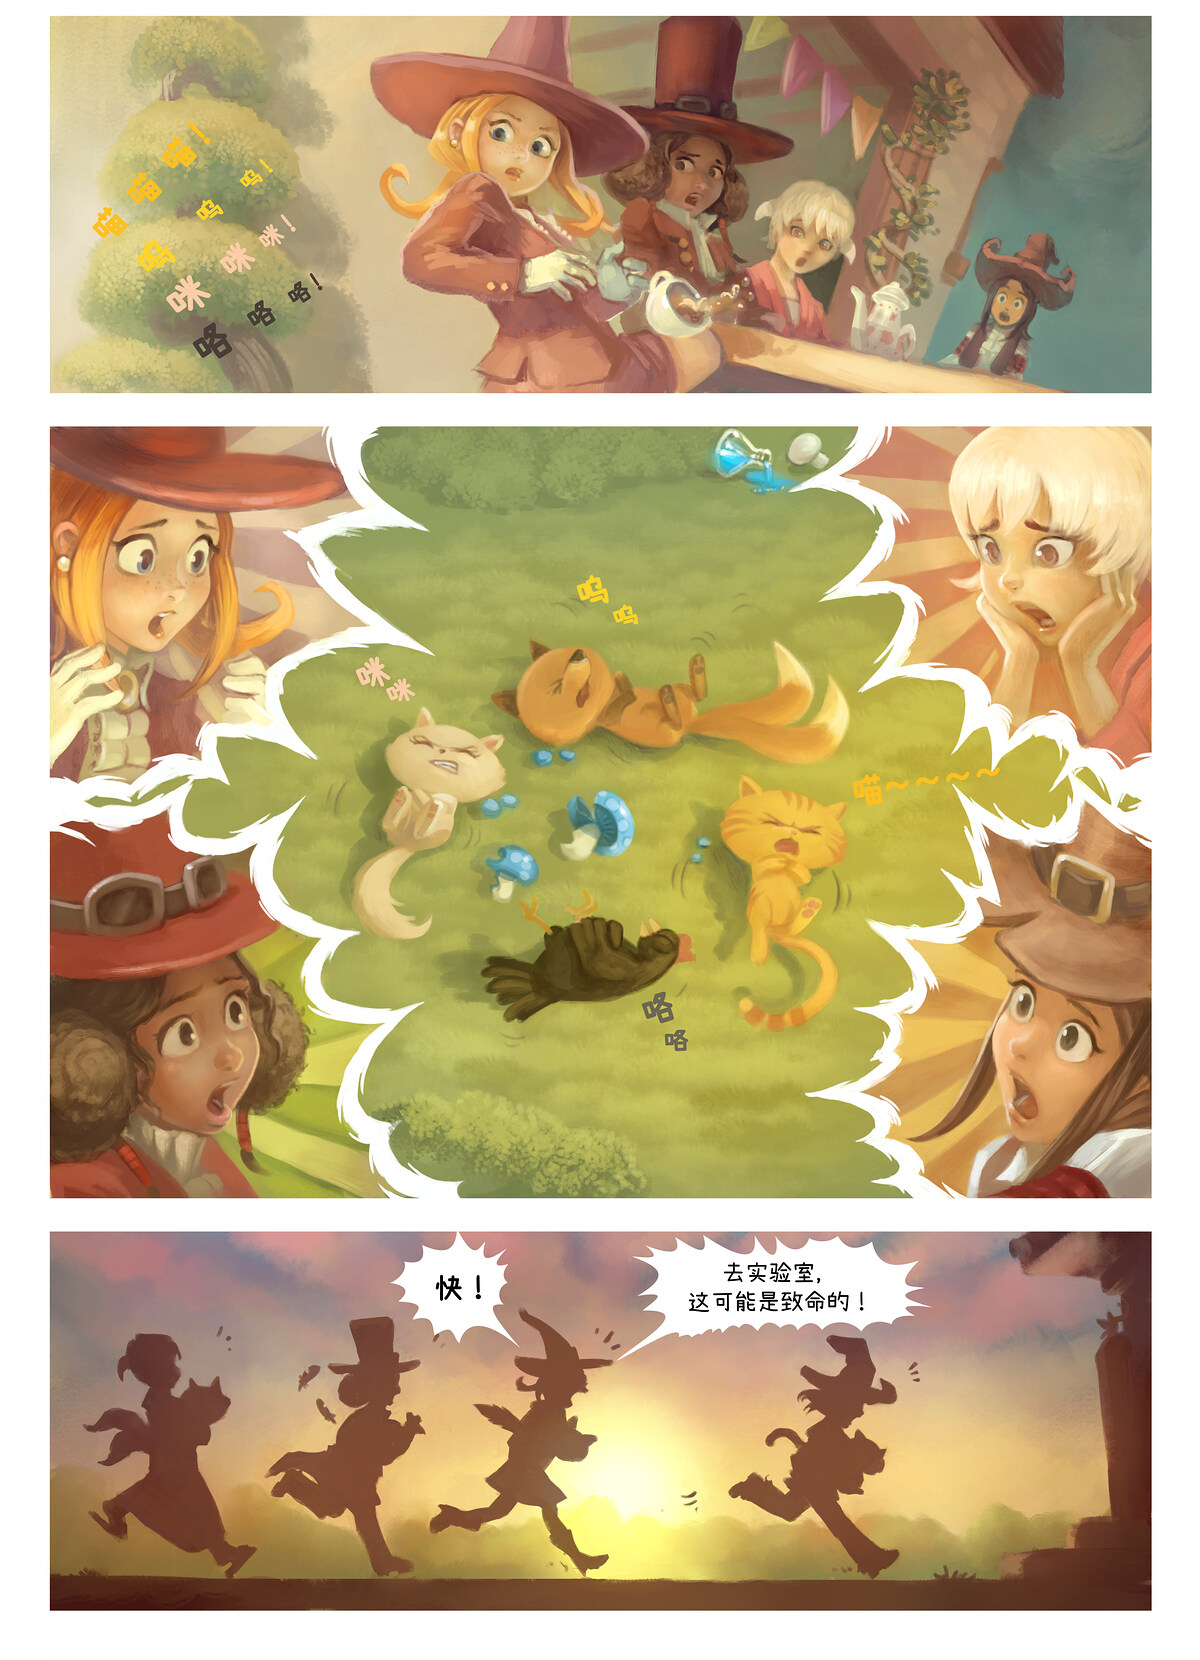 A webcomic page of Pepper&Carrot, 漫画全集 9 [cn], 页面 5